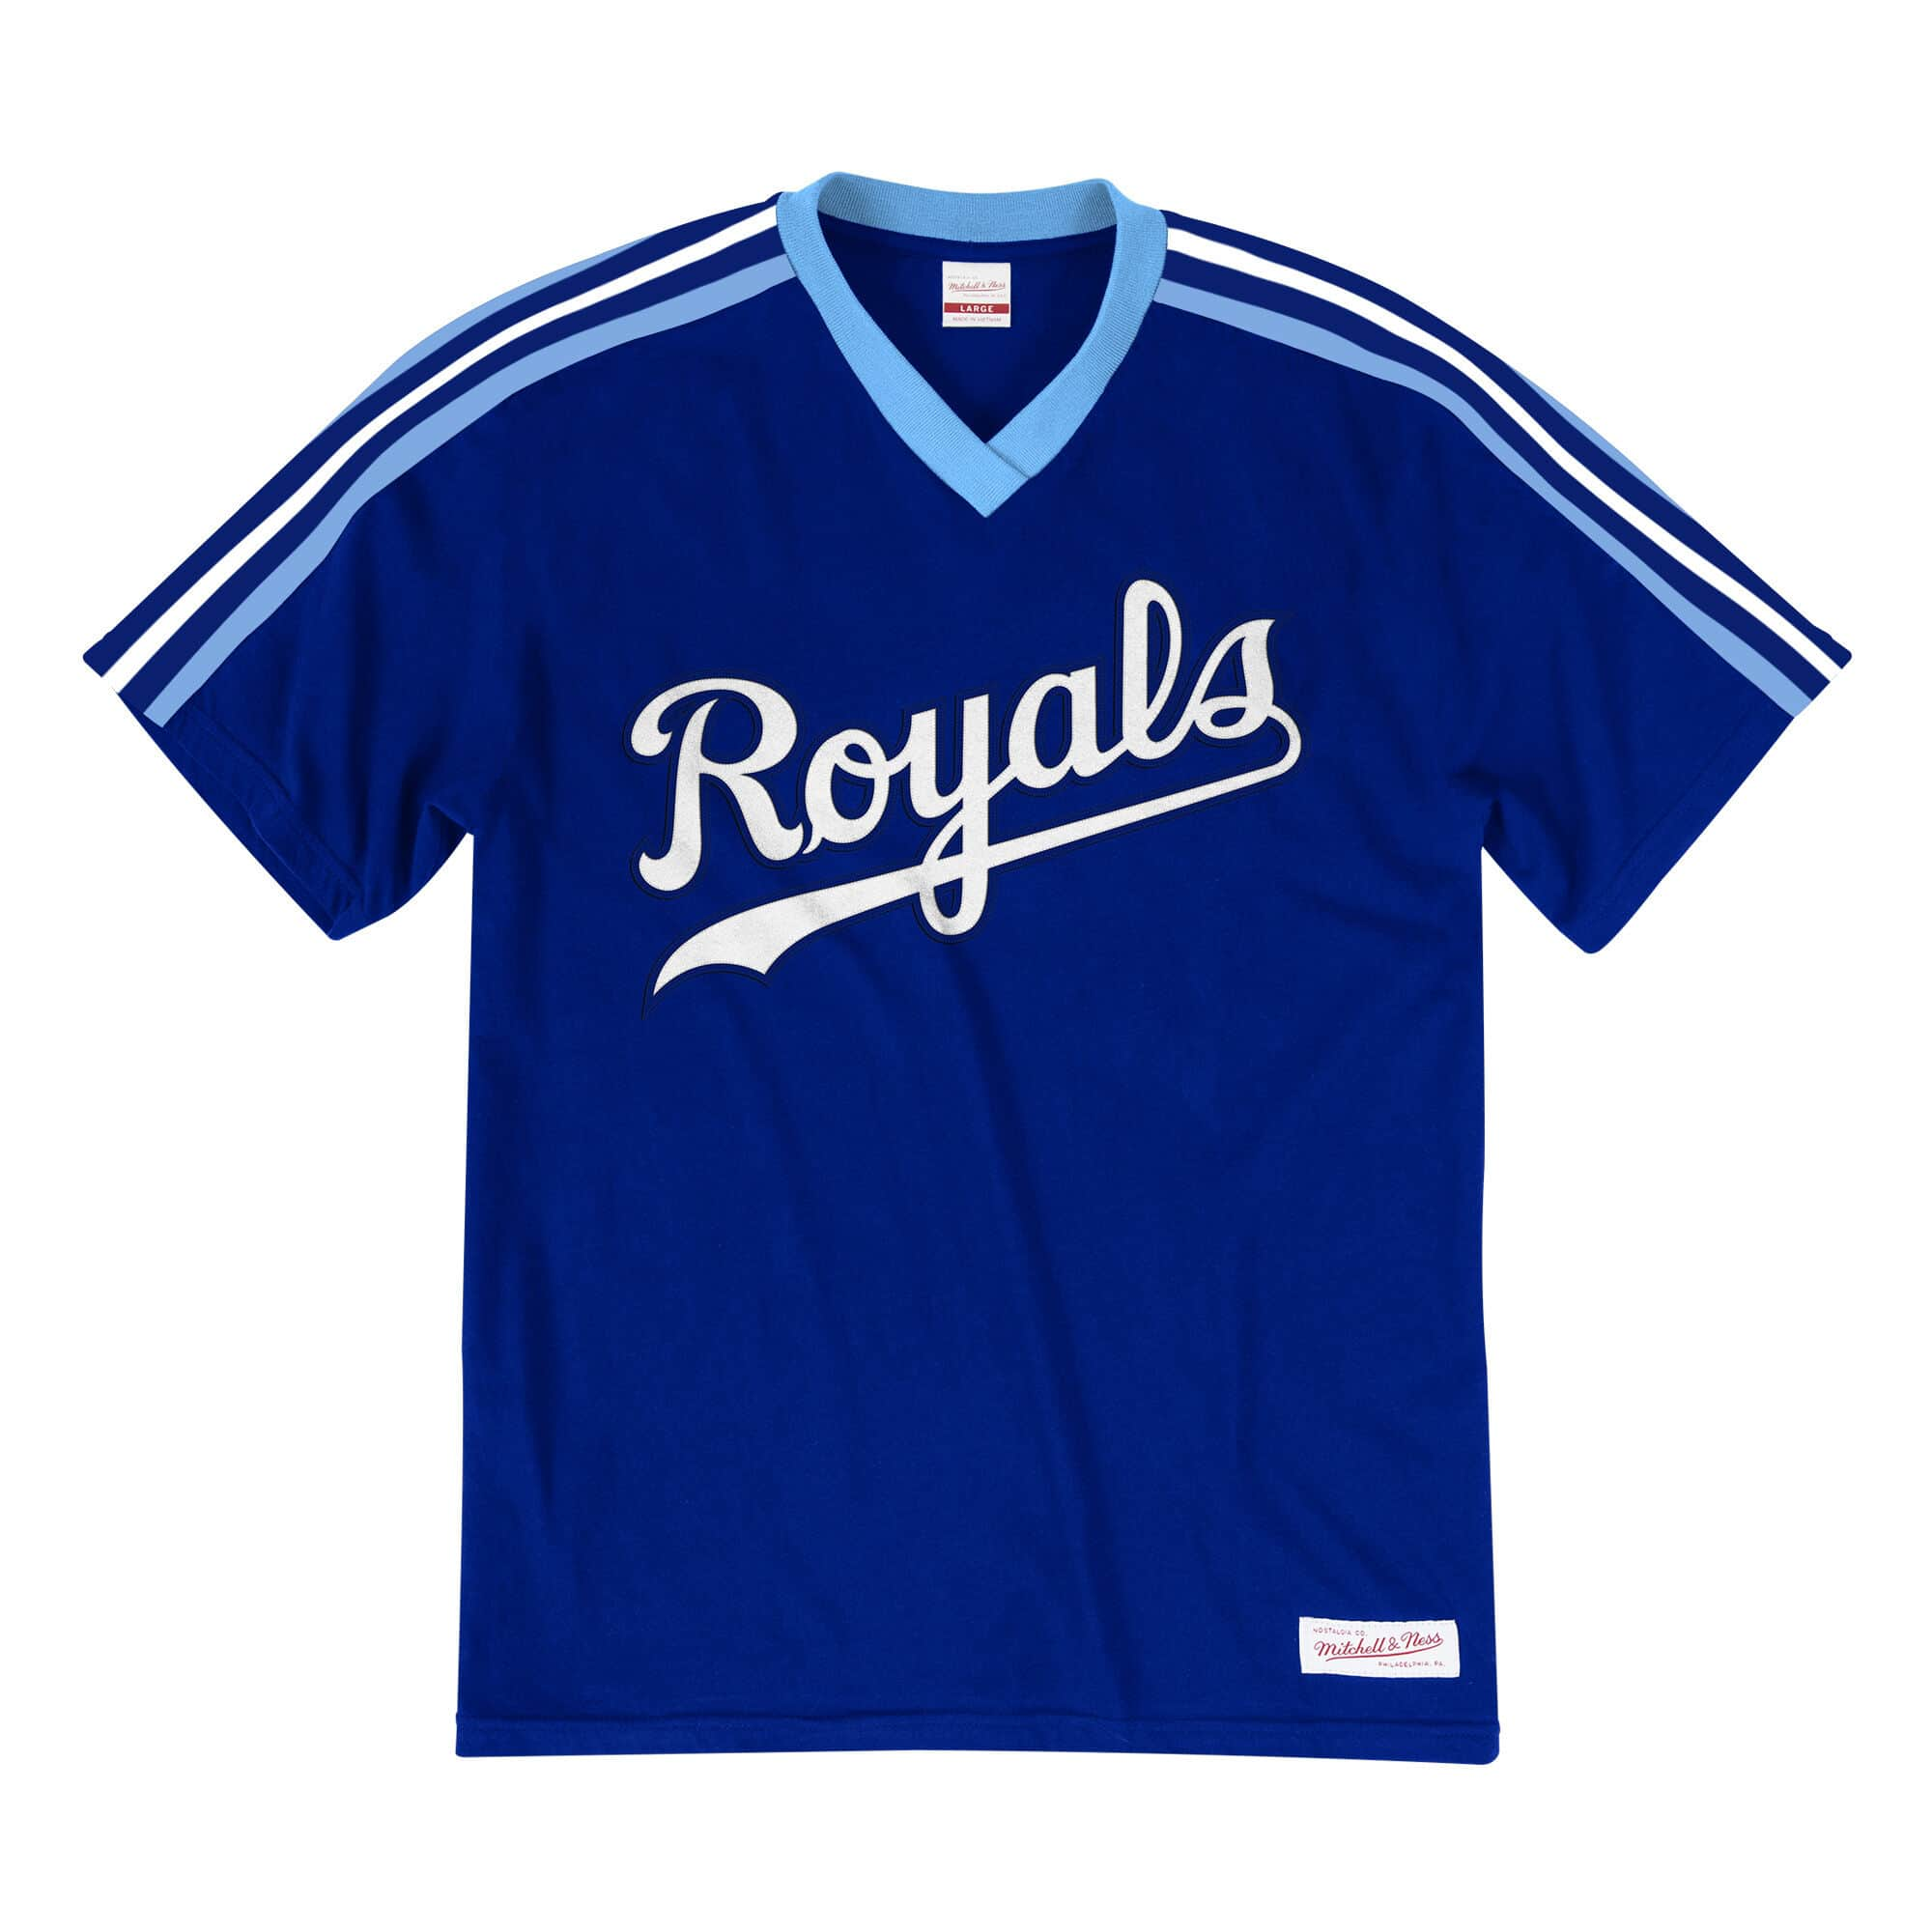 Overtime Win V-Neck Tee Kansas City Royals